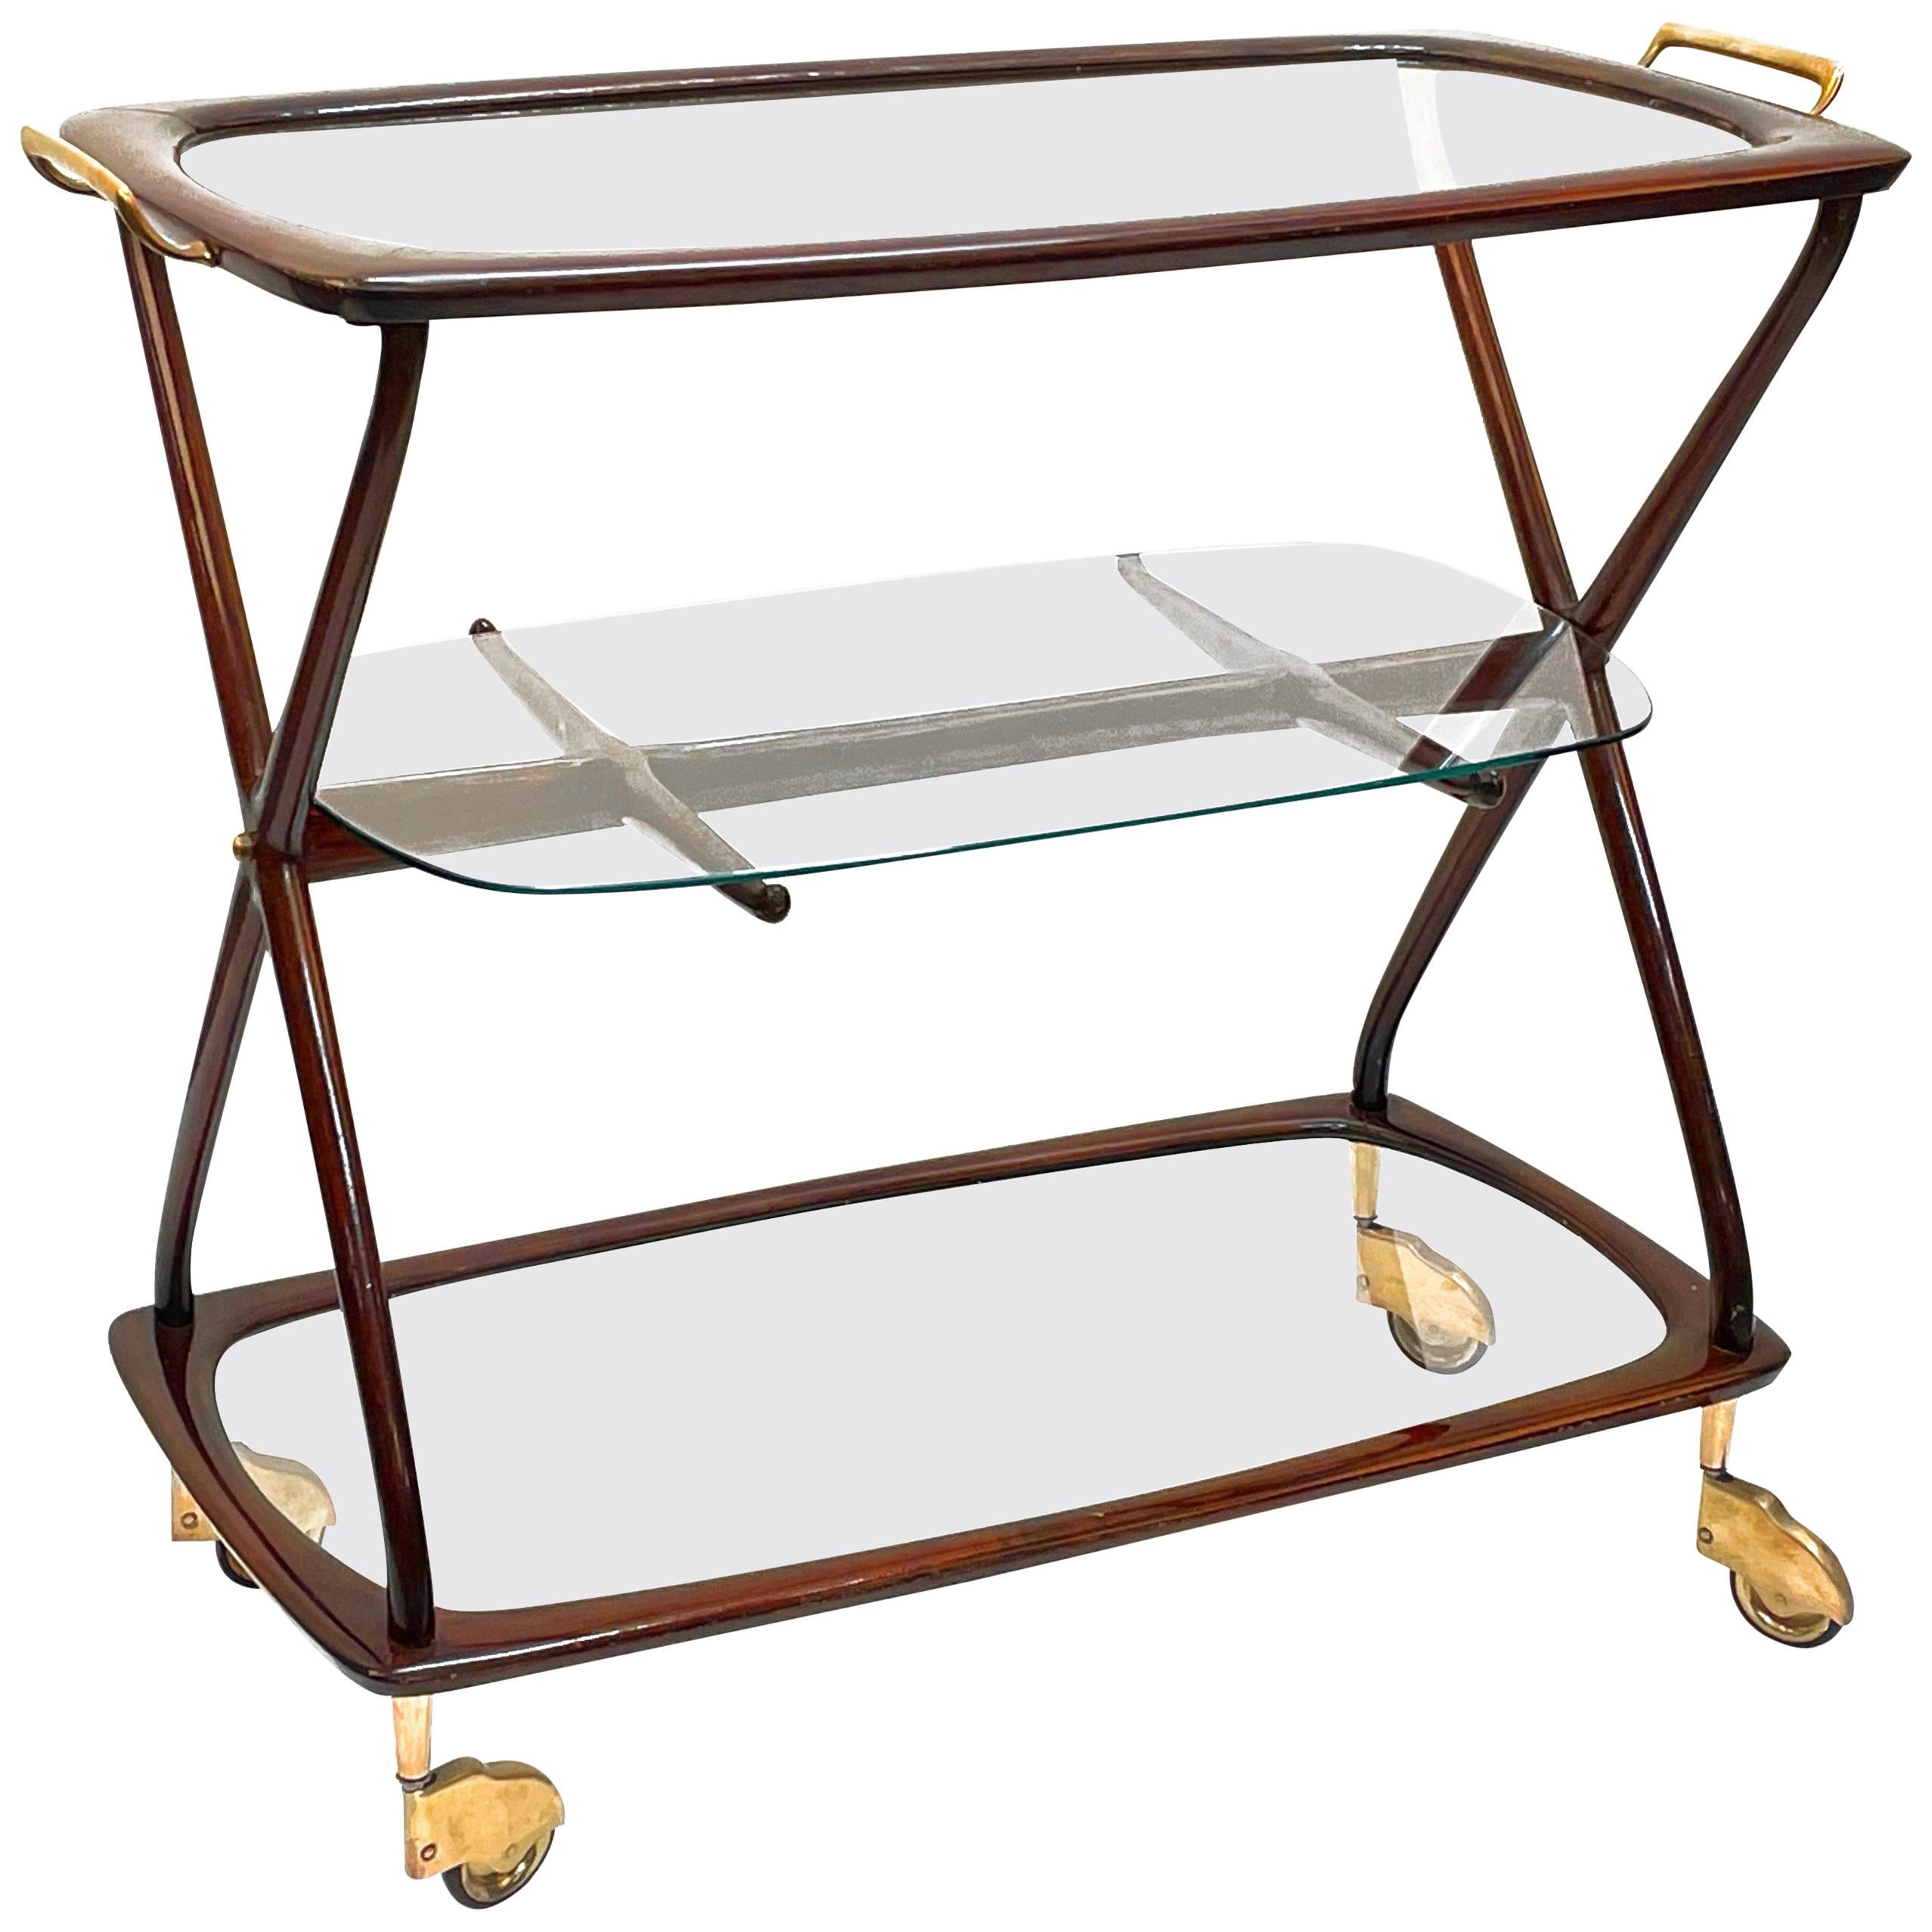 Midcentury Cesare Lacca Brass and Wood Italian Oval Serivng  Bar Cart, 1950s